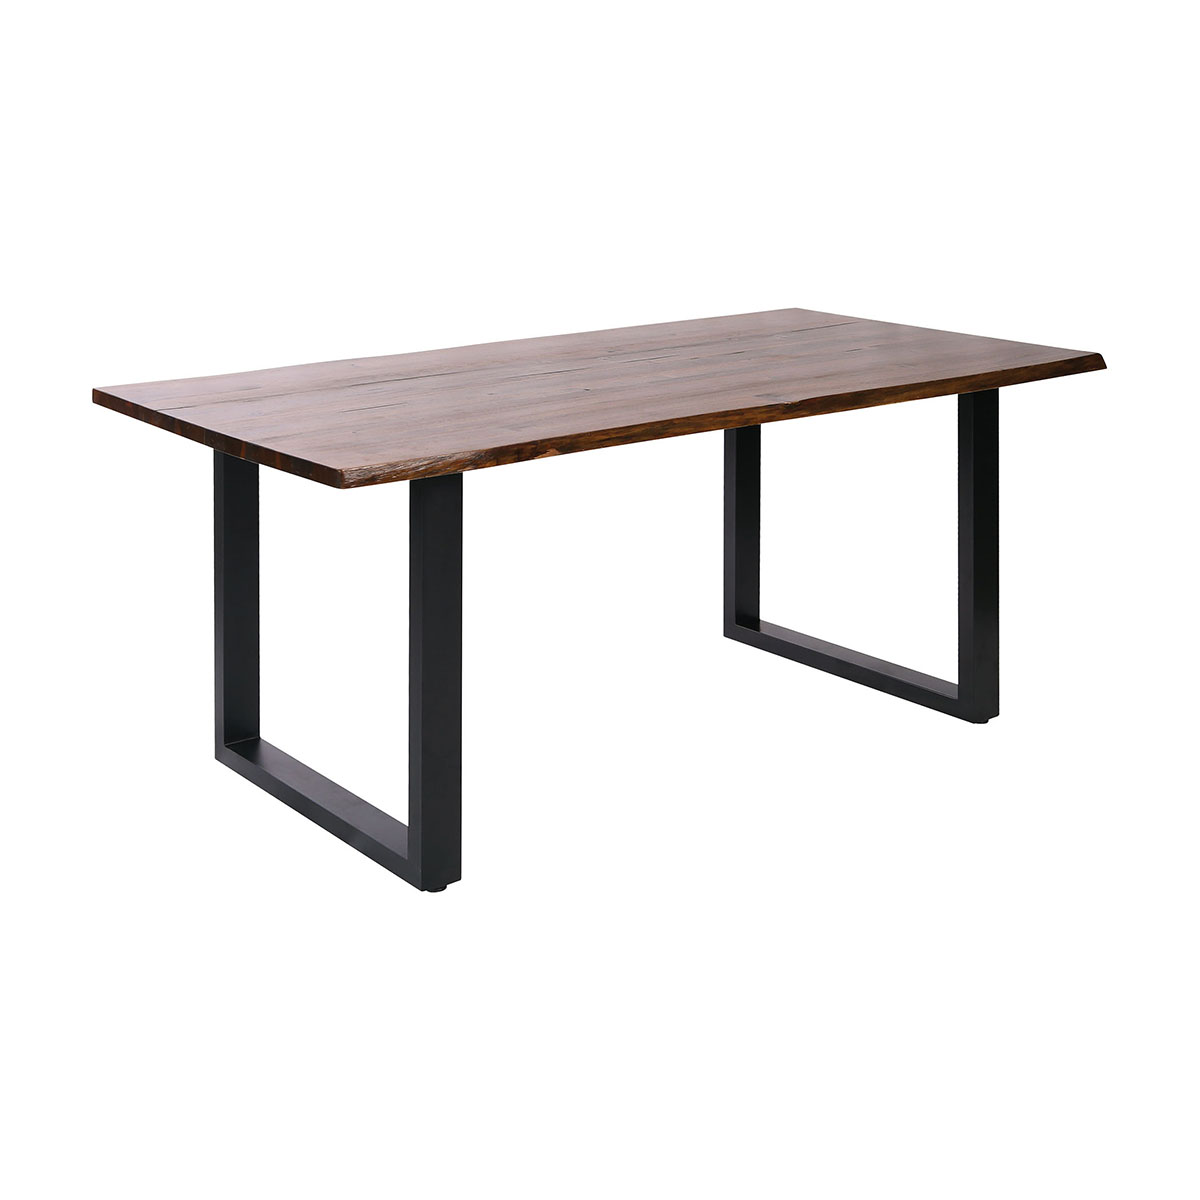 Fleming Dining Table with Living Edge Acacia Wood Top and Black Metal Legs | Stein World